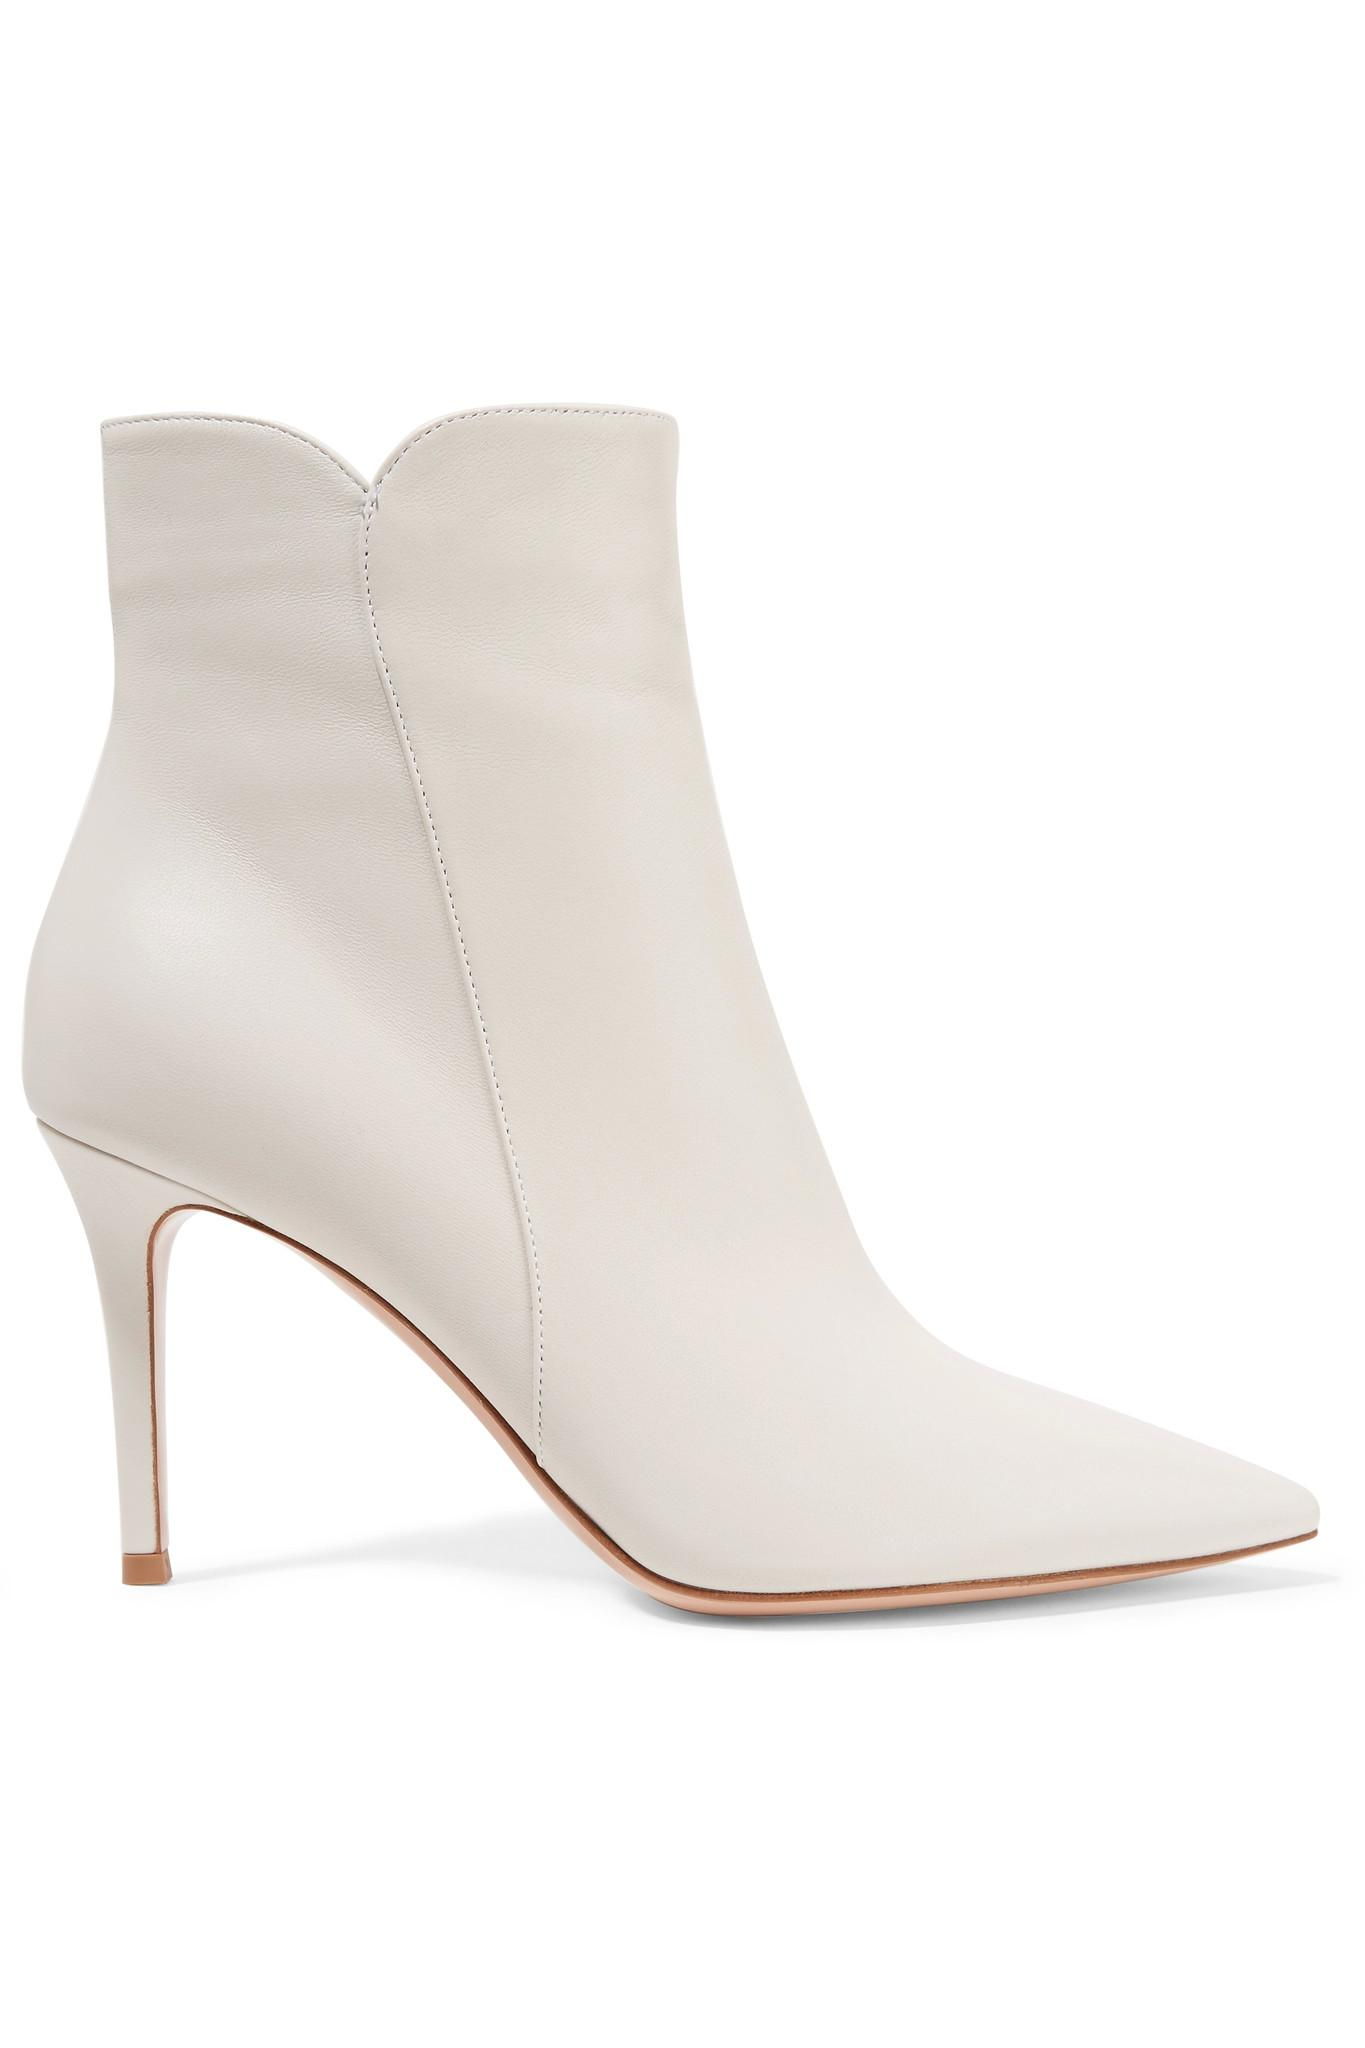 Gianvito Rossi Nappa Leather Levy 85 Ankle Boots in . yXEpr